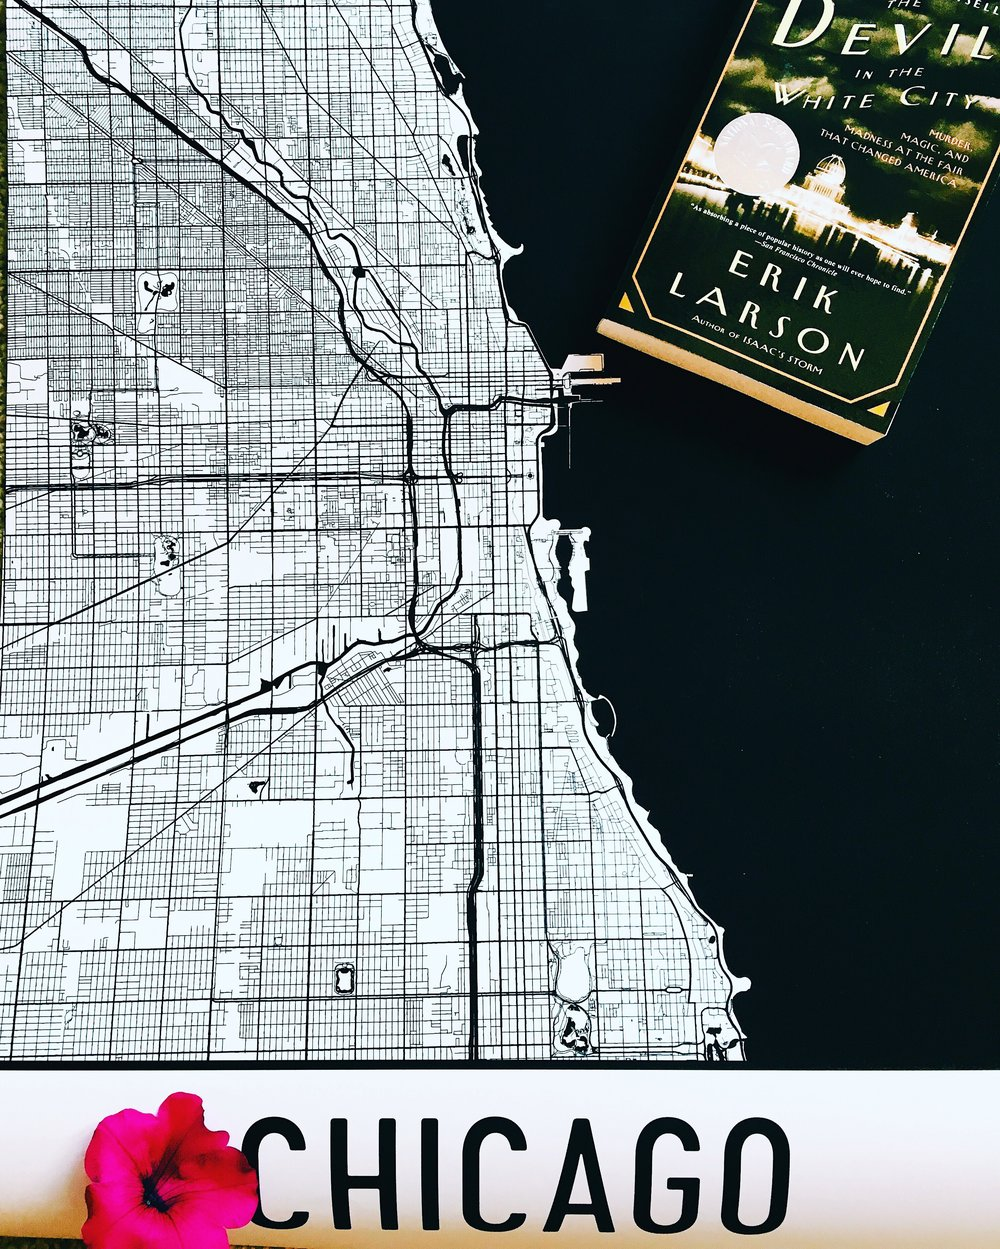 """Chicago, IL Street Map Poster"""